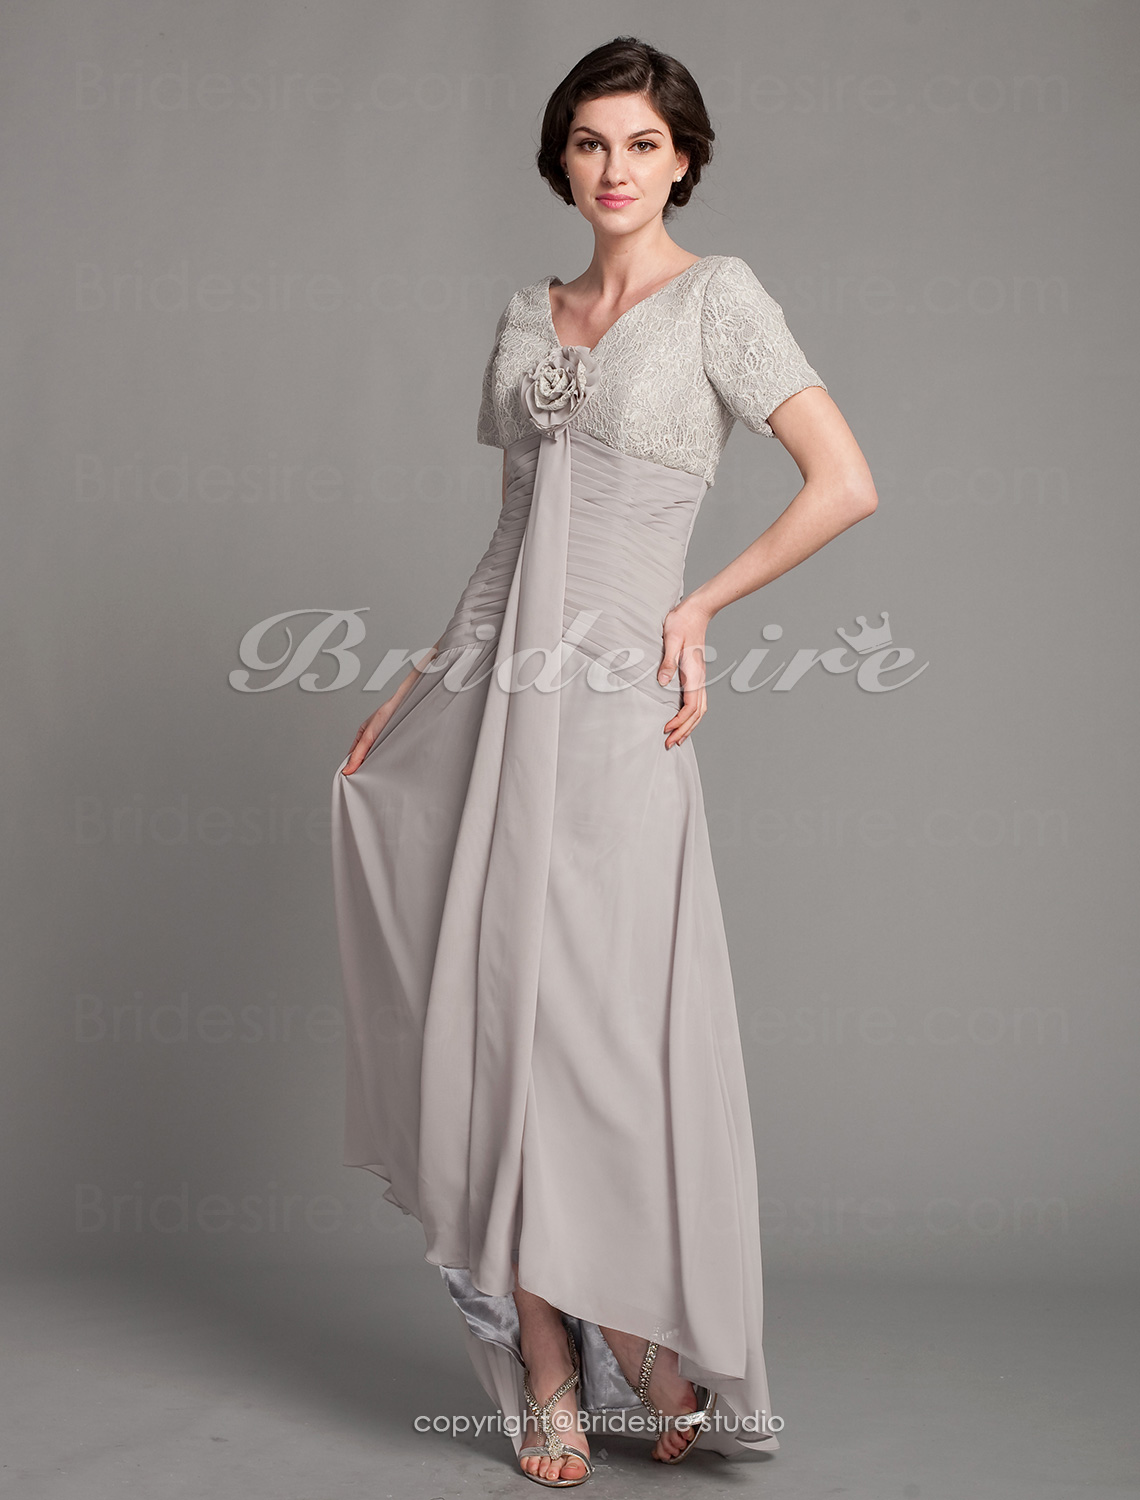 A-line Asymmetrical V-neck Chiffon And Lace Mother of the Bride Dress With A Wrap